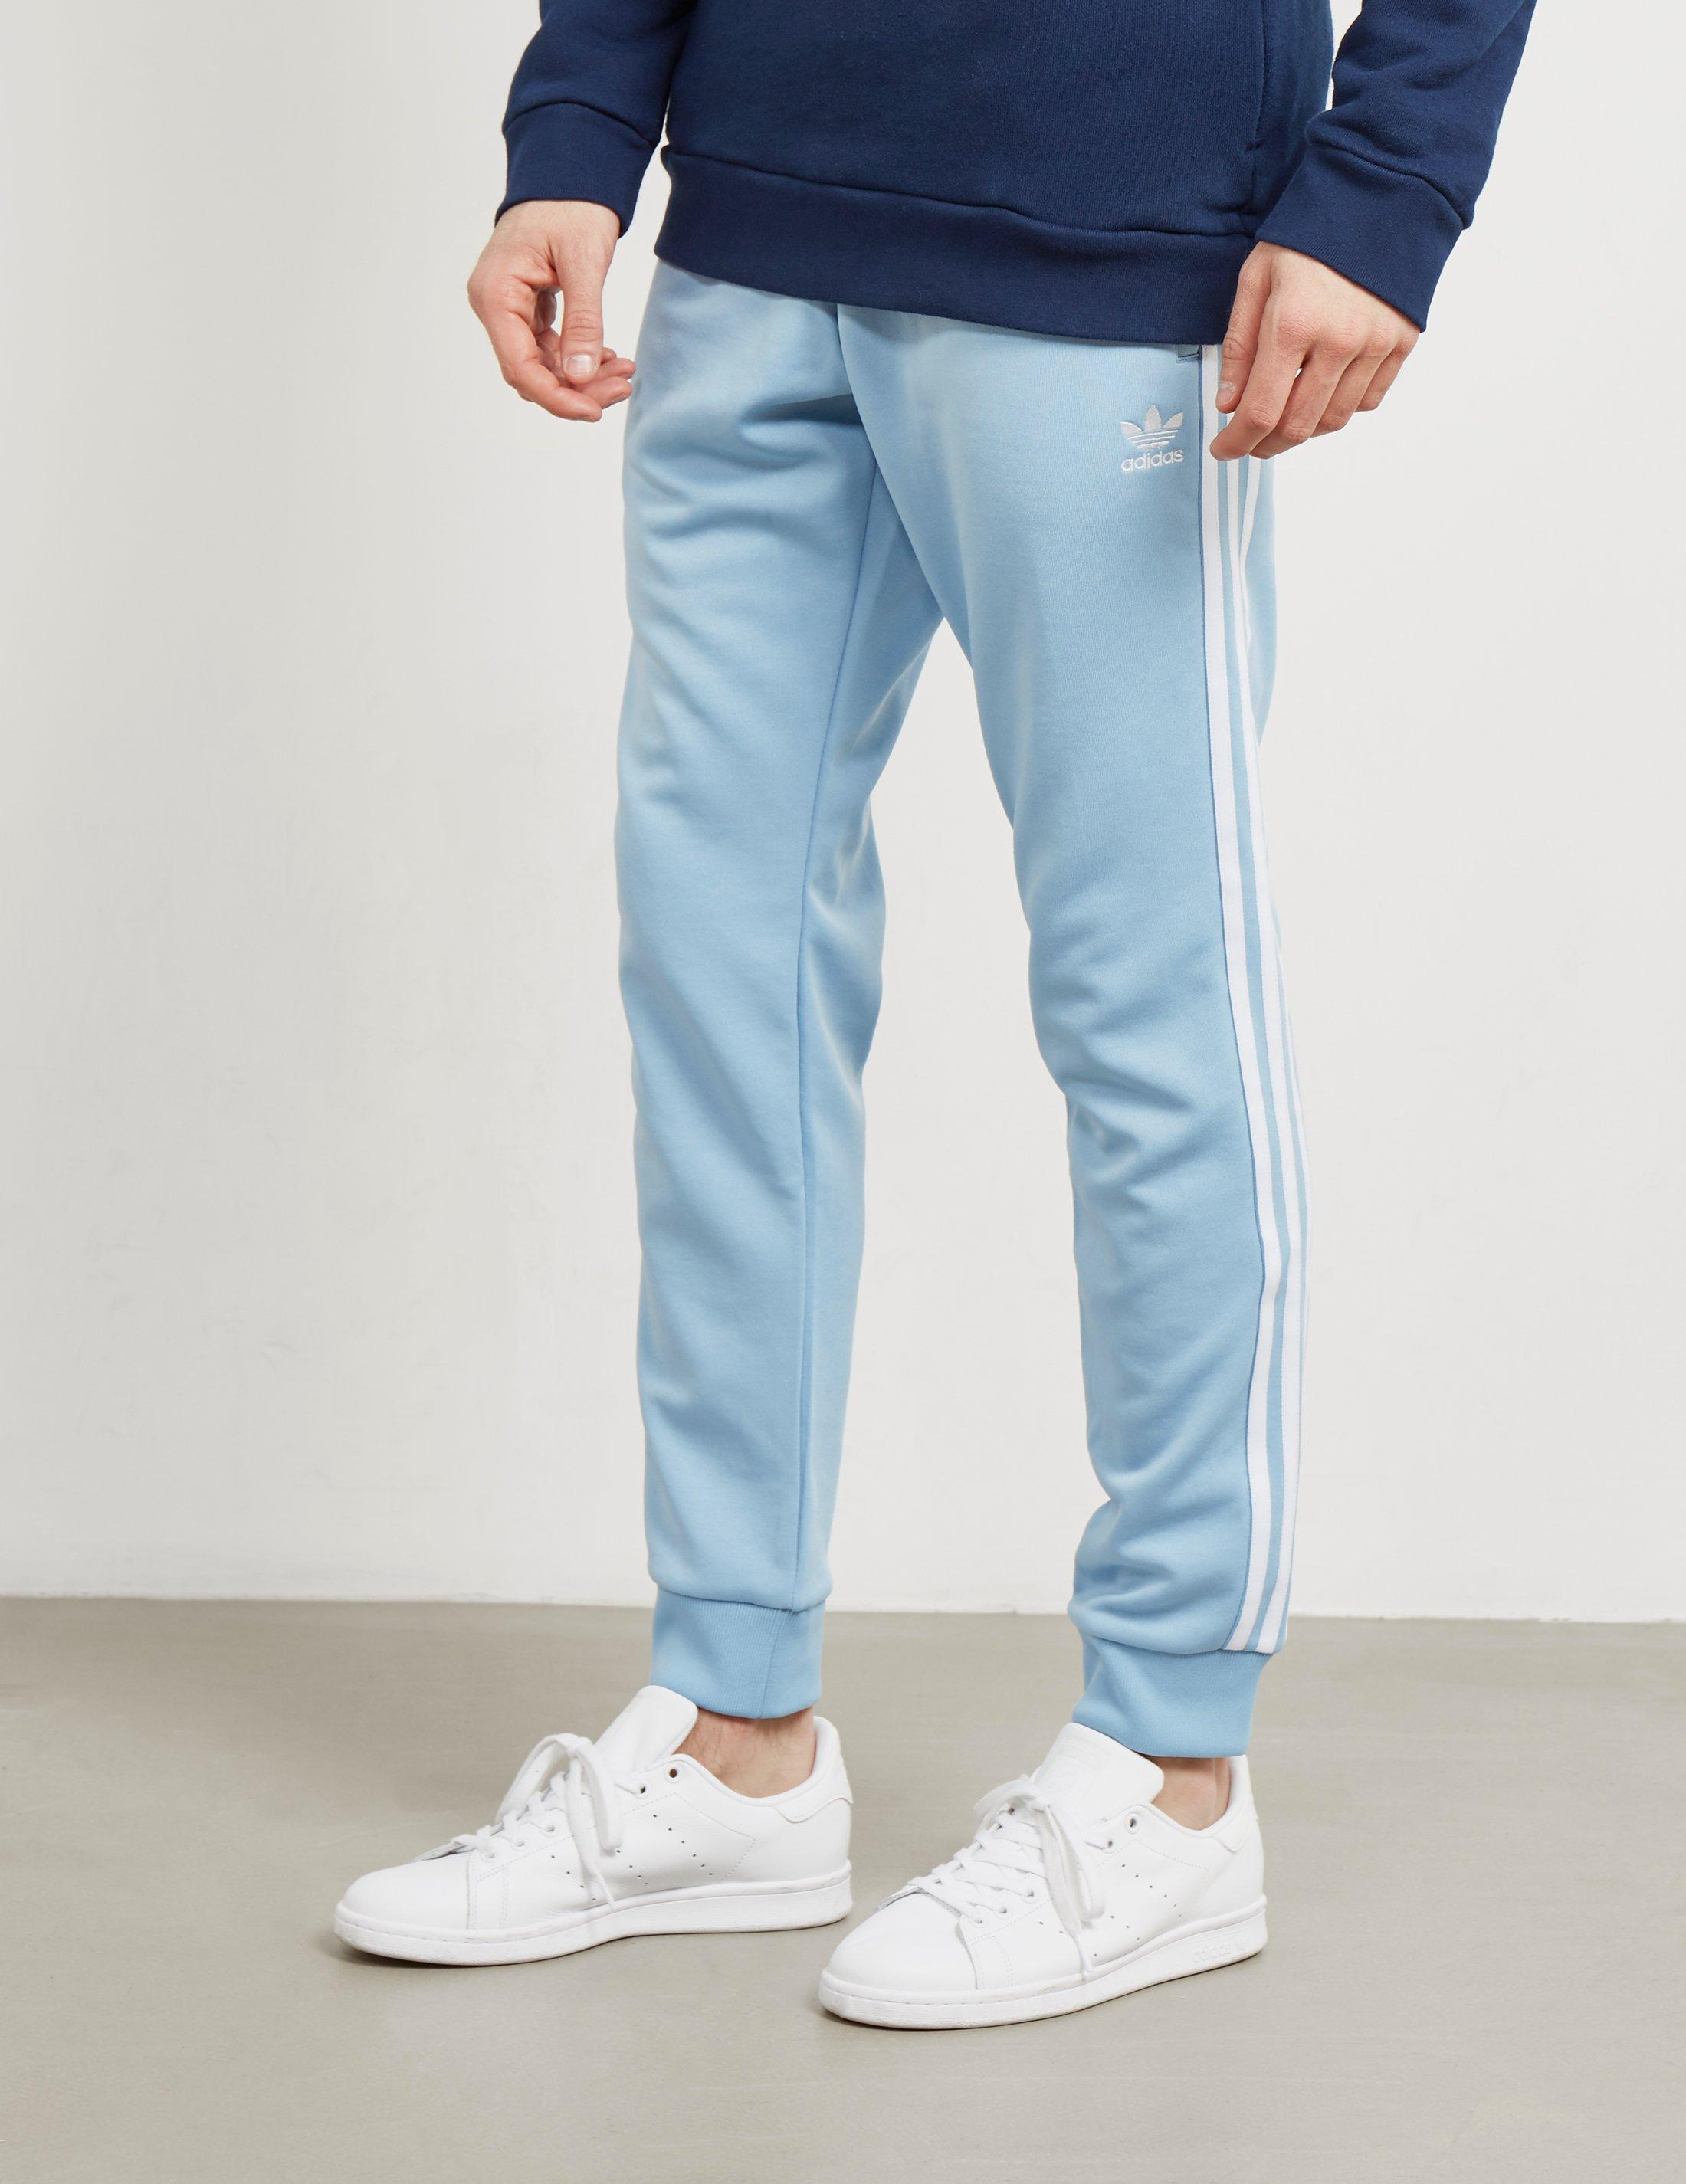 349967ed4d11 Lyst - adidas Originals Mens Superstar Track Pants Ash Blue in Blue ...